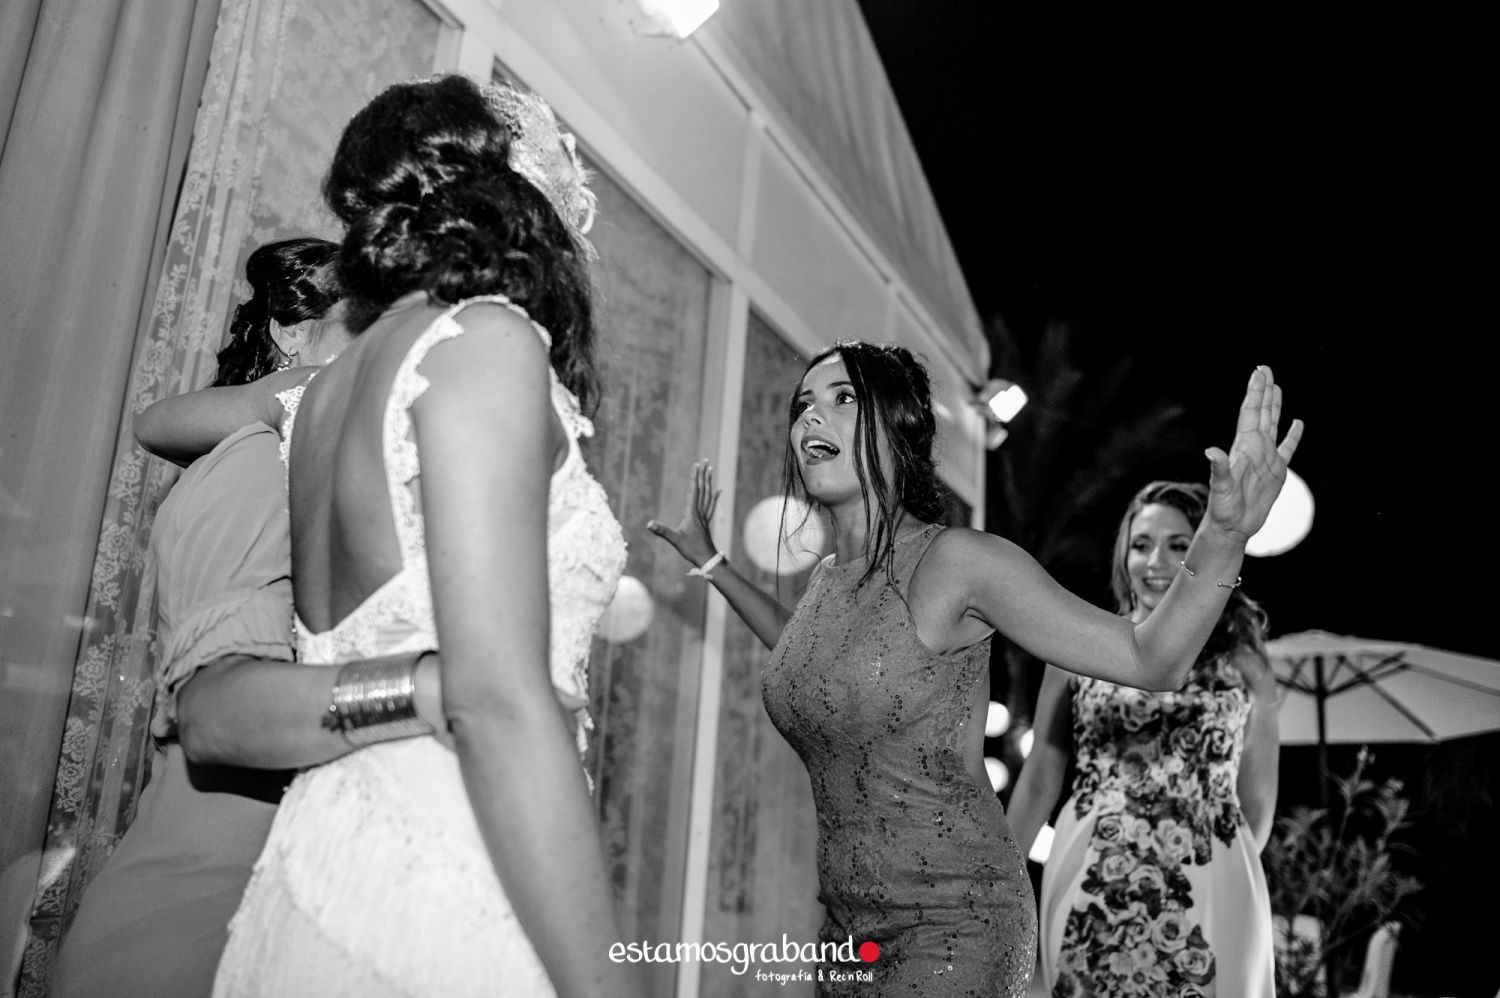 LAURA-Y-JOSE-VARO-31-2 Laura & José - video boda cadiz